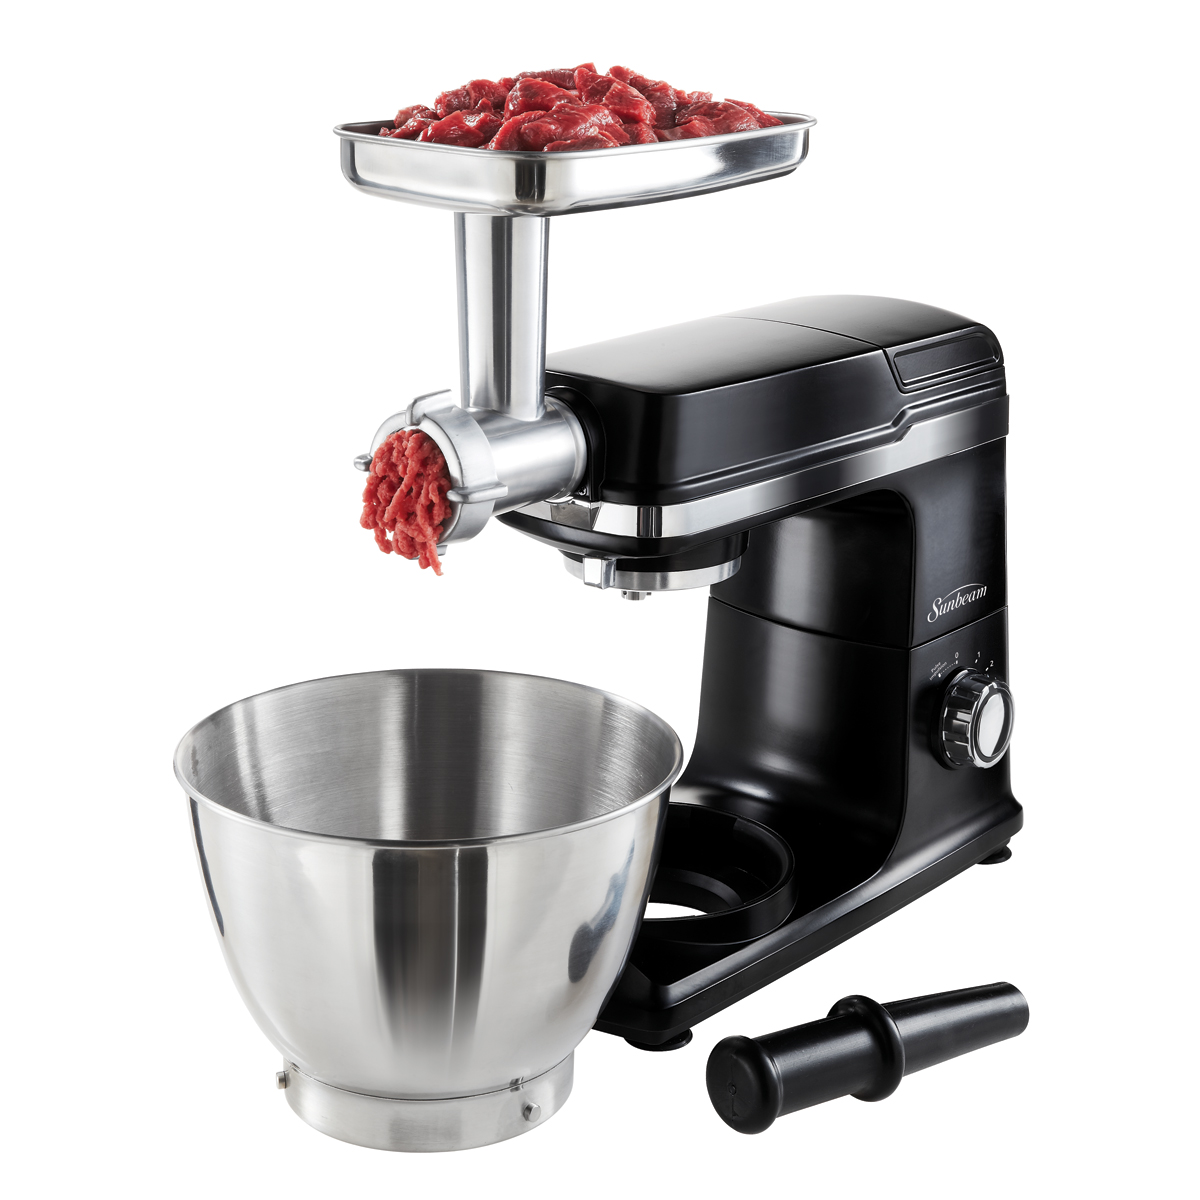 Sunbeam Mixmaster Planetary Stand Mixer Meat Grinder